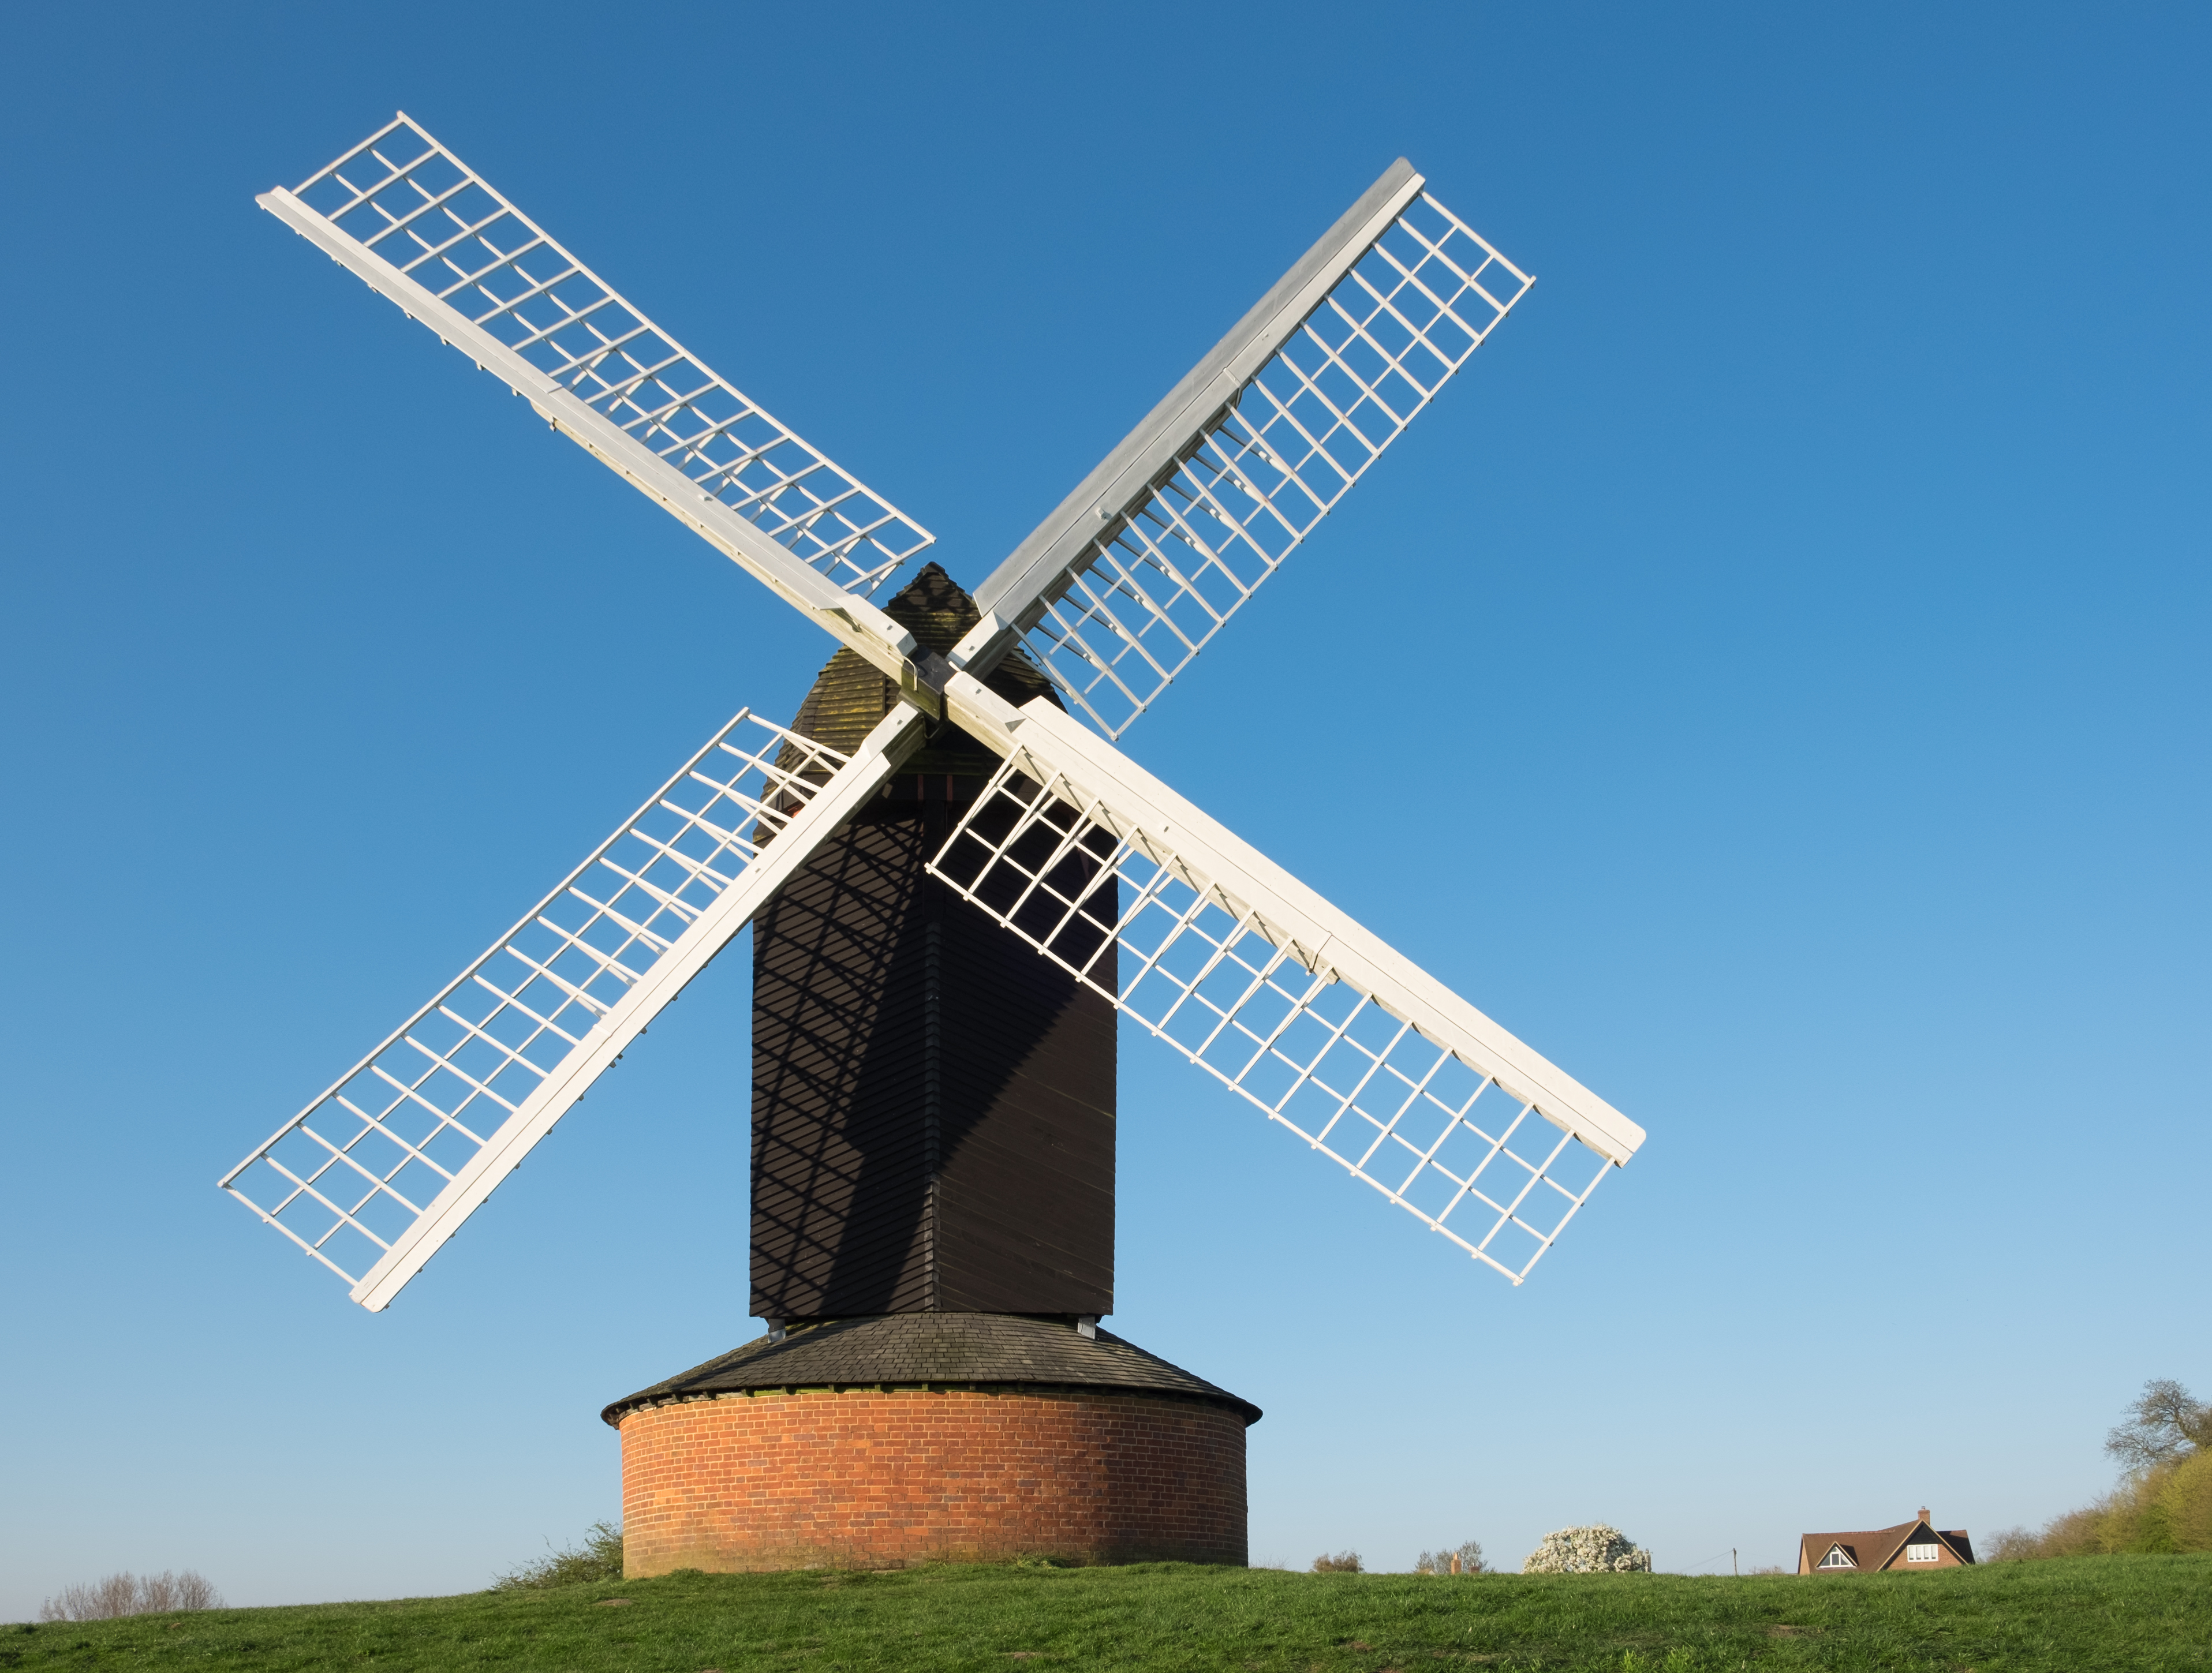 Brill windmill, Buckinghamshire. This late 17th century post mill is a Grade II* listed building in England.